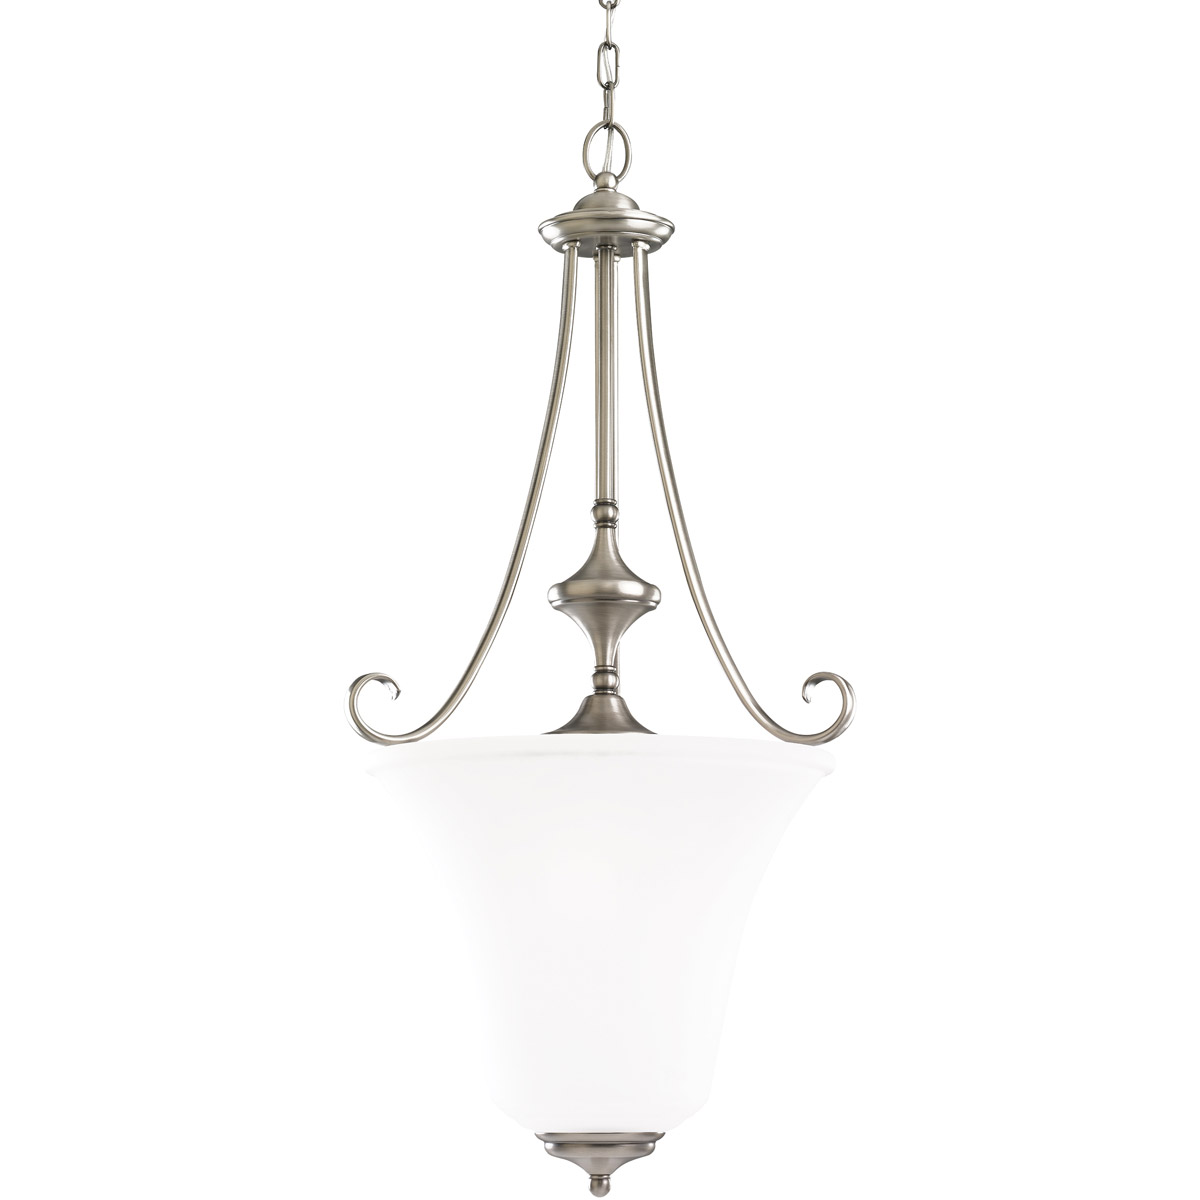 Sea Gull Lighting Parkview 3 Light Foyer Pendant in Antique Brushed Nickel 51380-965 photo